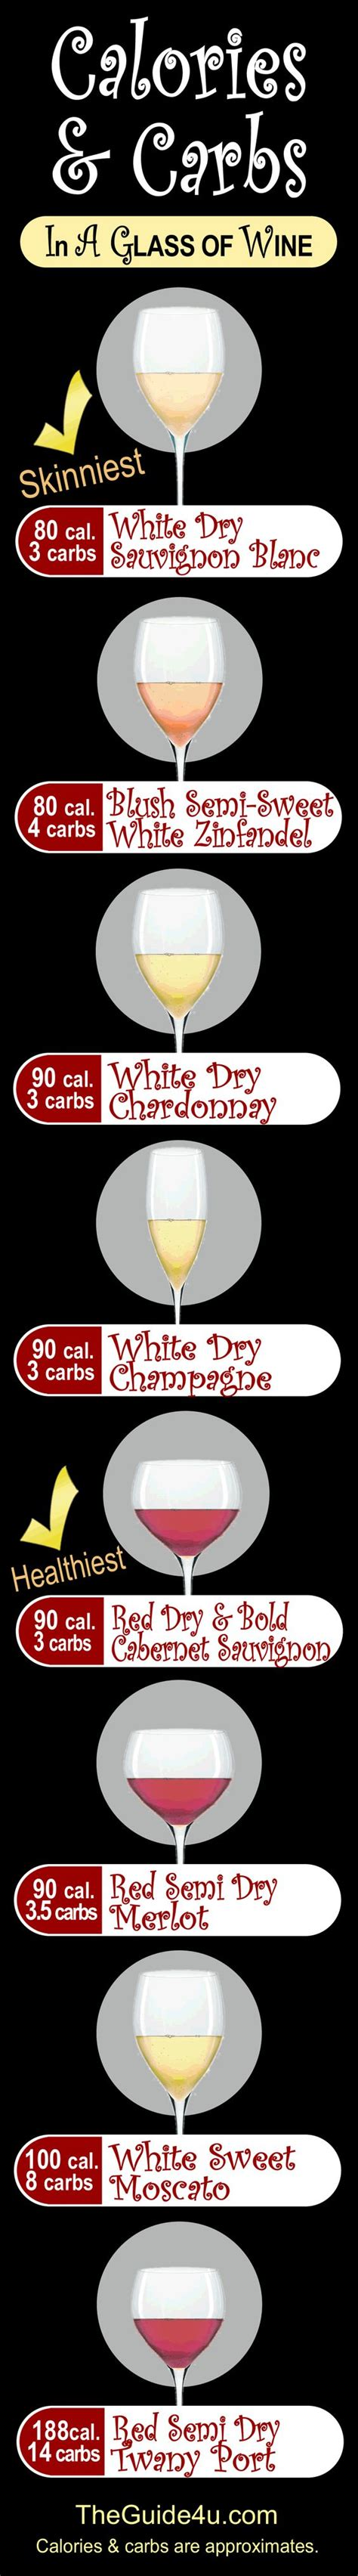 carbohydrates wine calories carbohydrates wine chart article http